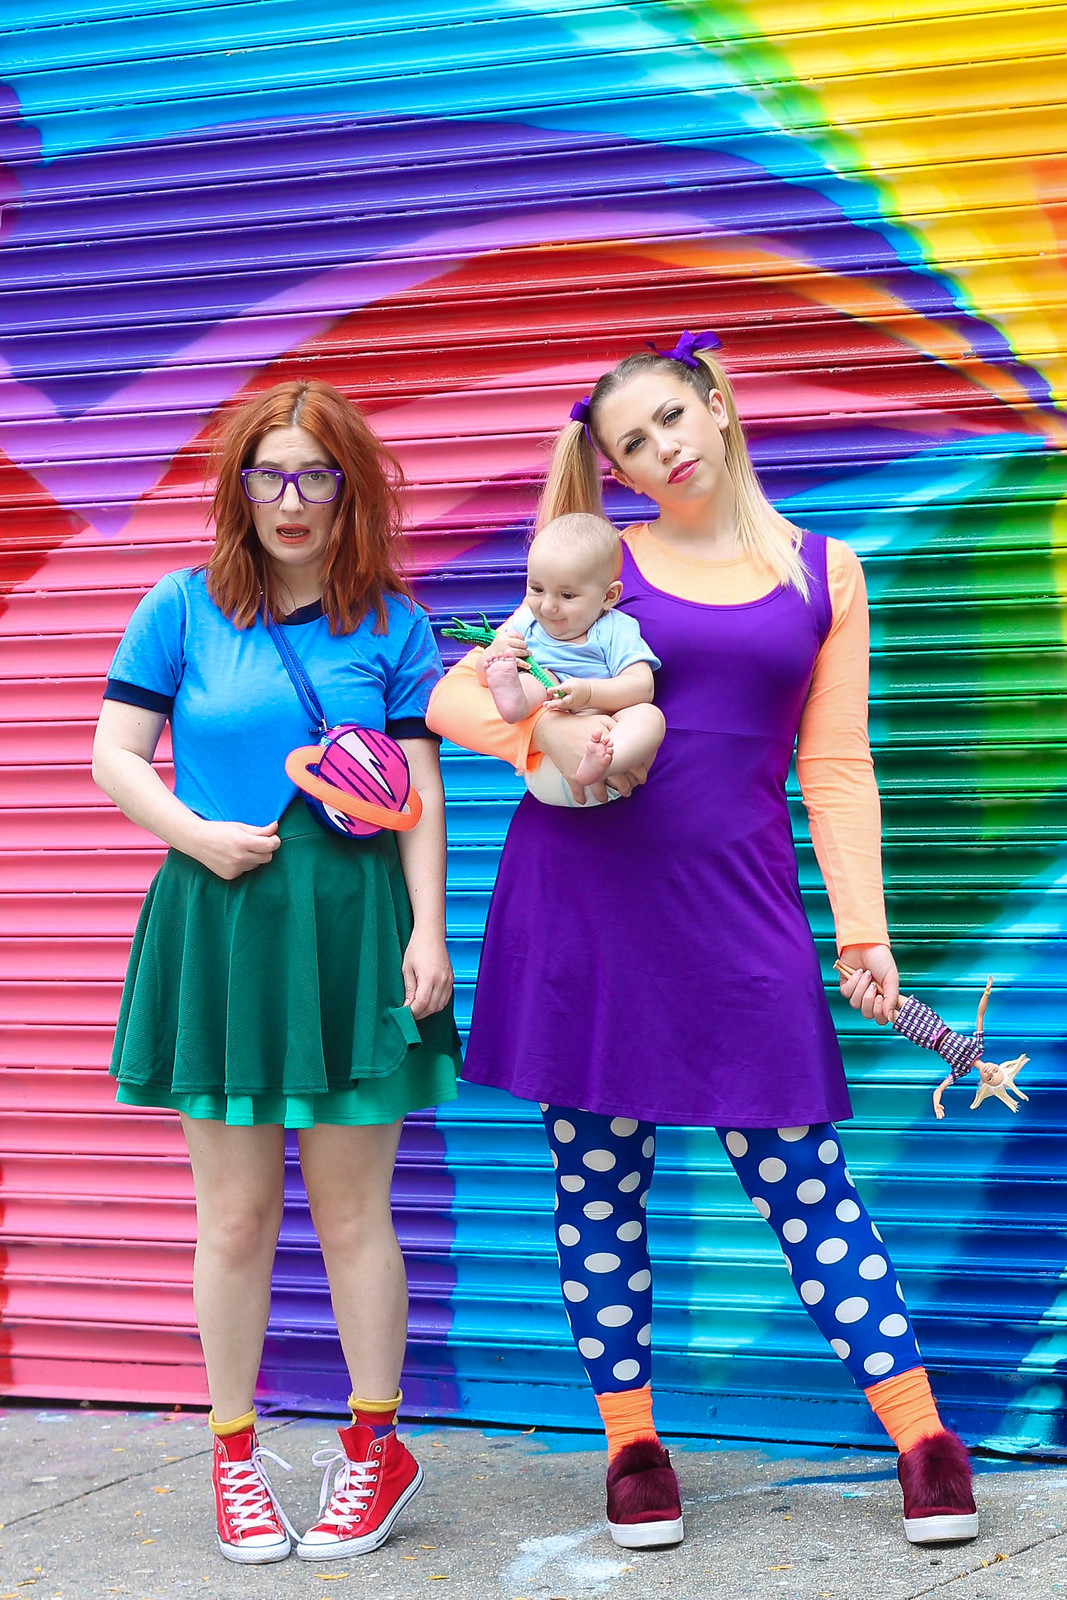 Nickelodeon Rugrats Affordable Halloween Costumes Chuckie Tommy Angelica Funny Friends